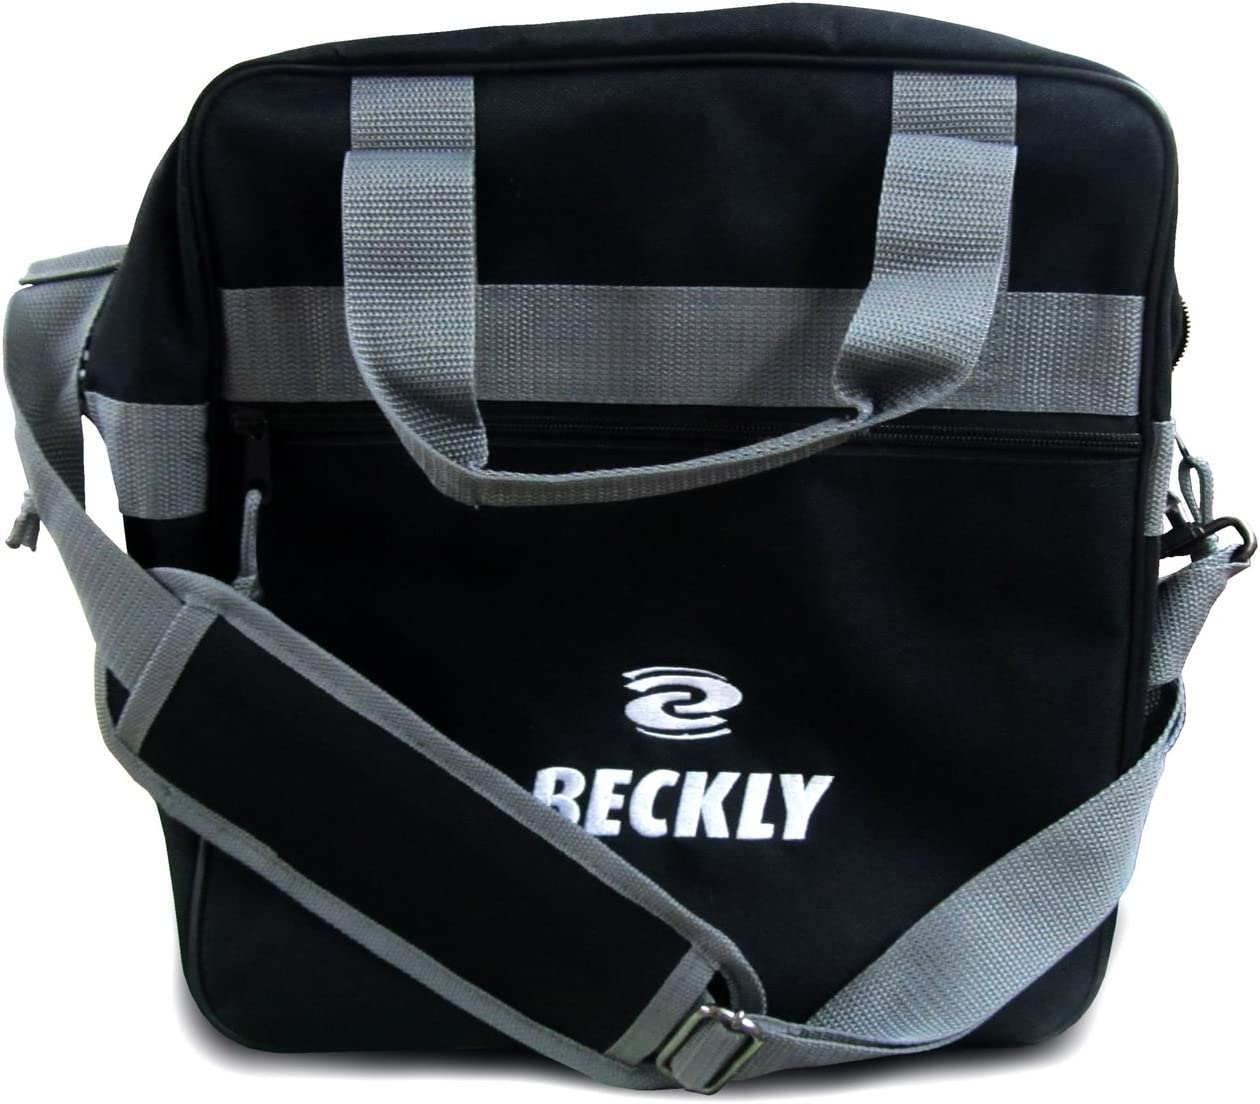 Beckly Super Bowling Tote -Bowling Bag- Fits Your Bowling Ball and Bowling Shoes- Single Bowling Ball Tote- Front Zippered Pocket and Inside Shoe Sleeves-Carry and Shoulder Straps